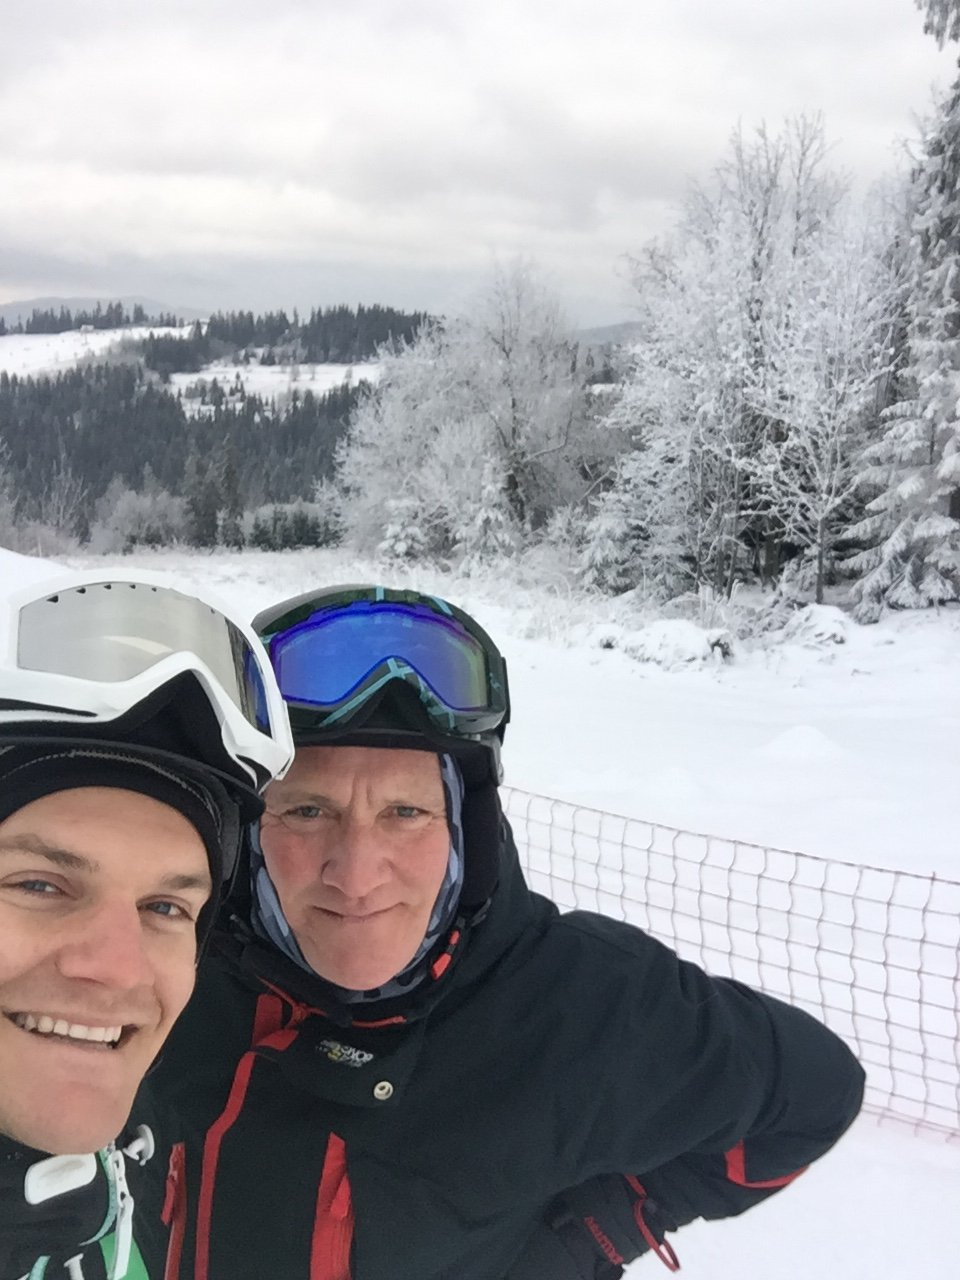 Gaz and his dad skiing in Bialka on a lovely day in January